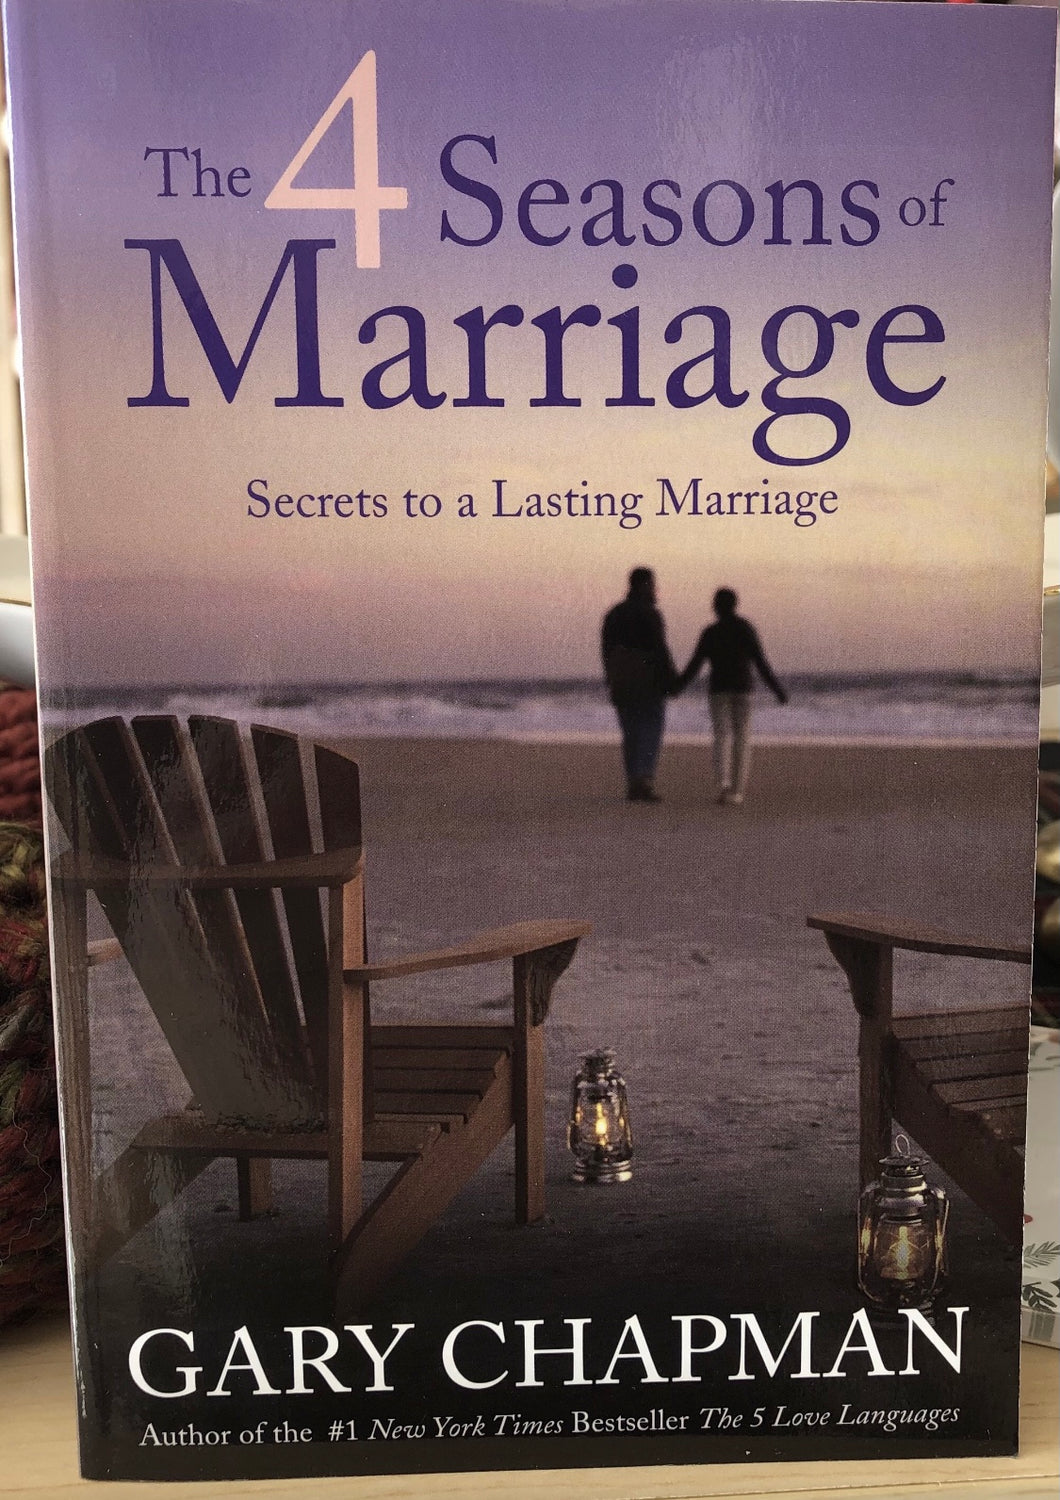 The 4 Seasons of Marriage - Secrets to a Lasting Marriage